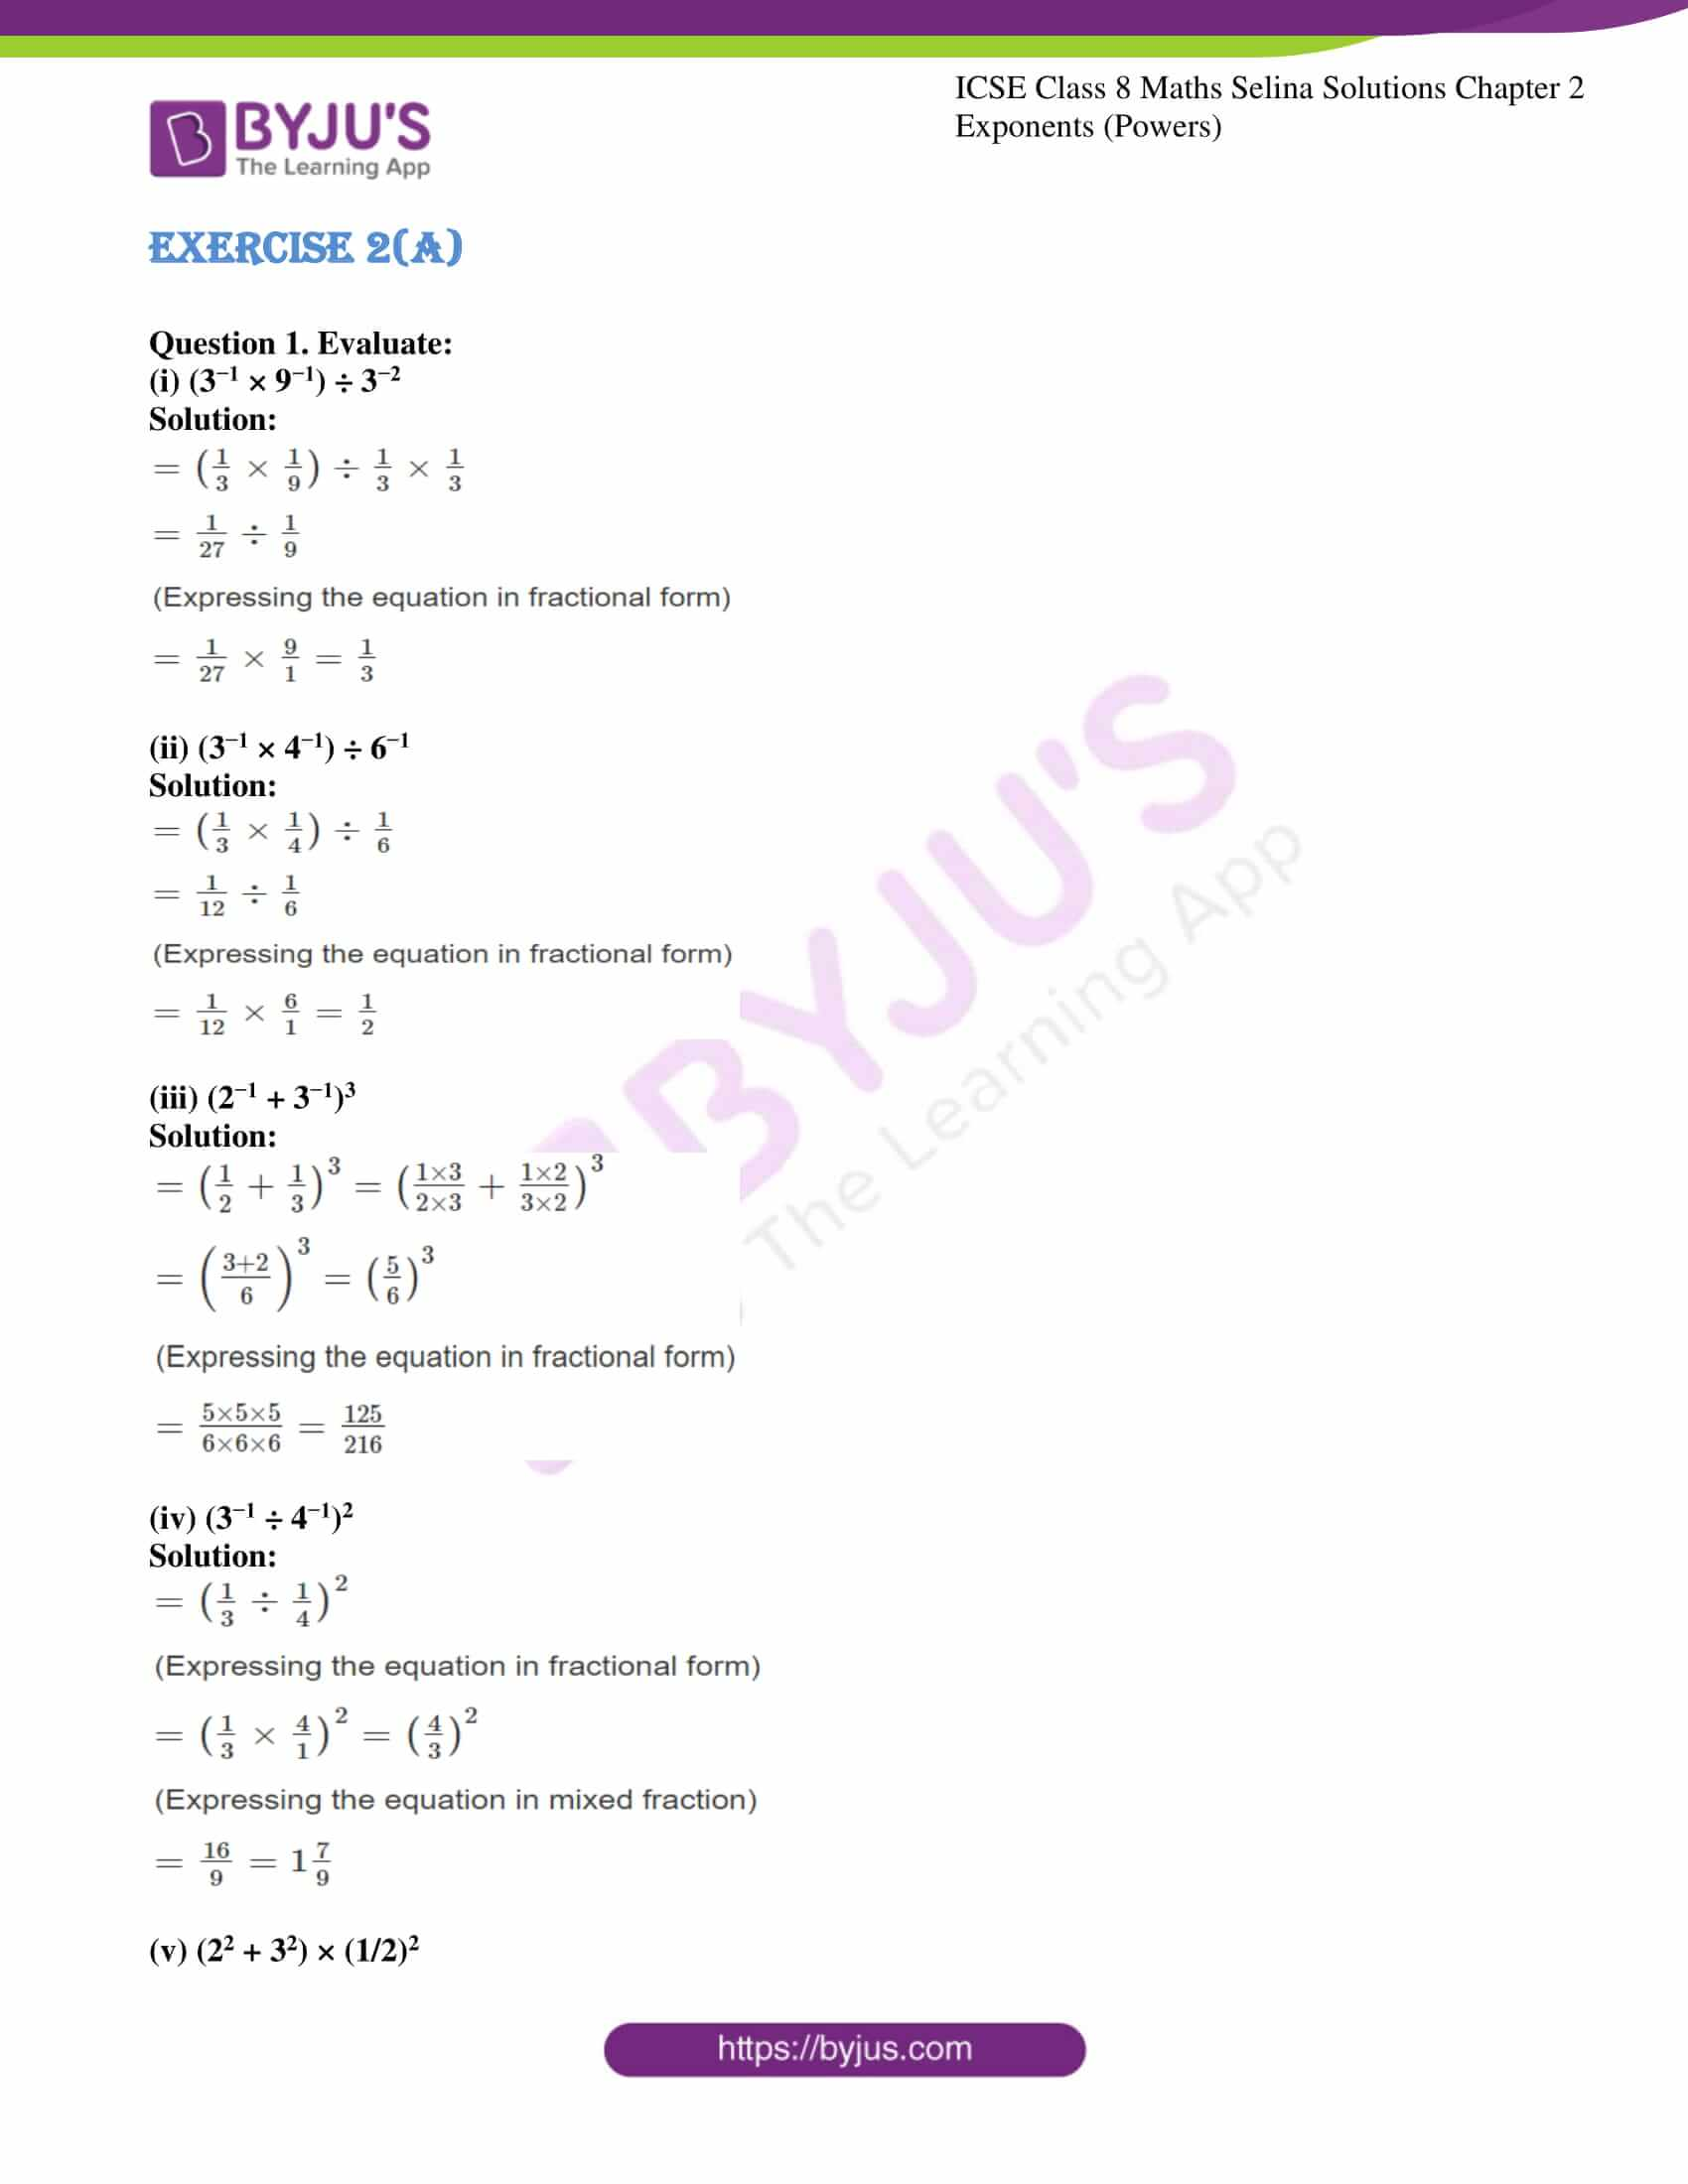 icse april7 class 8 maths selina solutions chapter 2 exponents powers 01